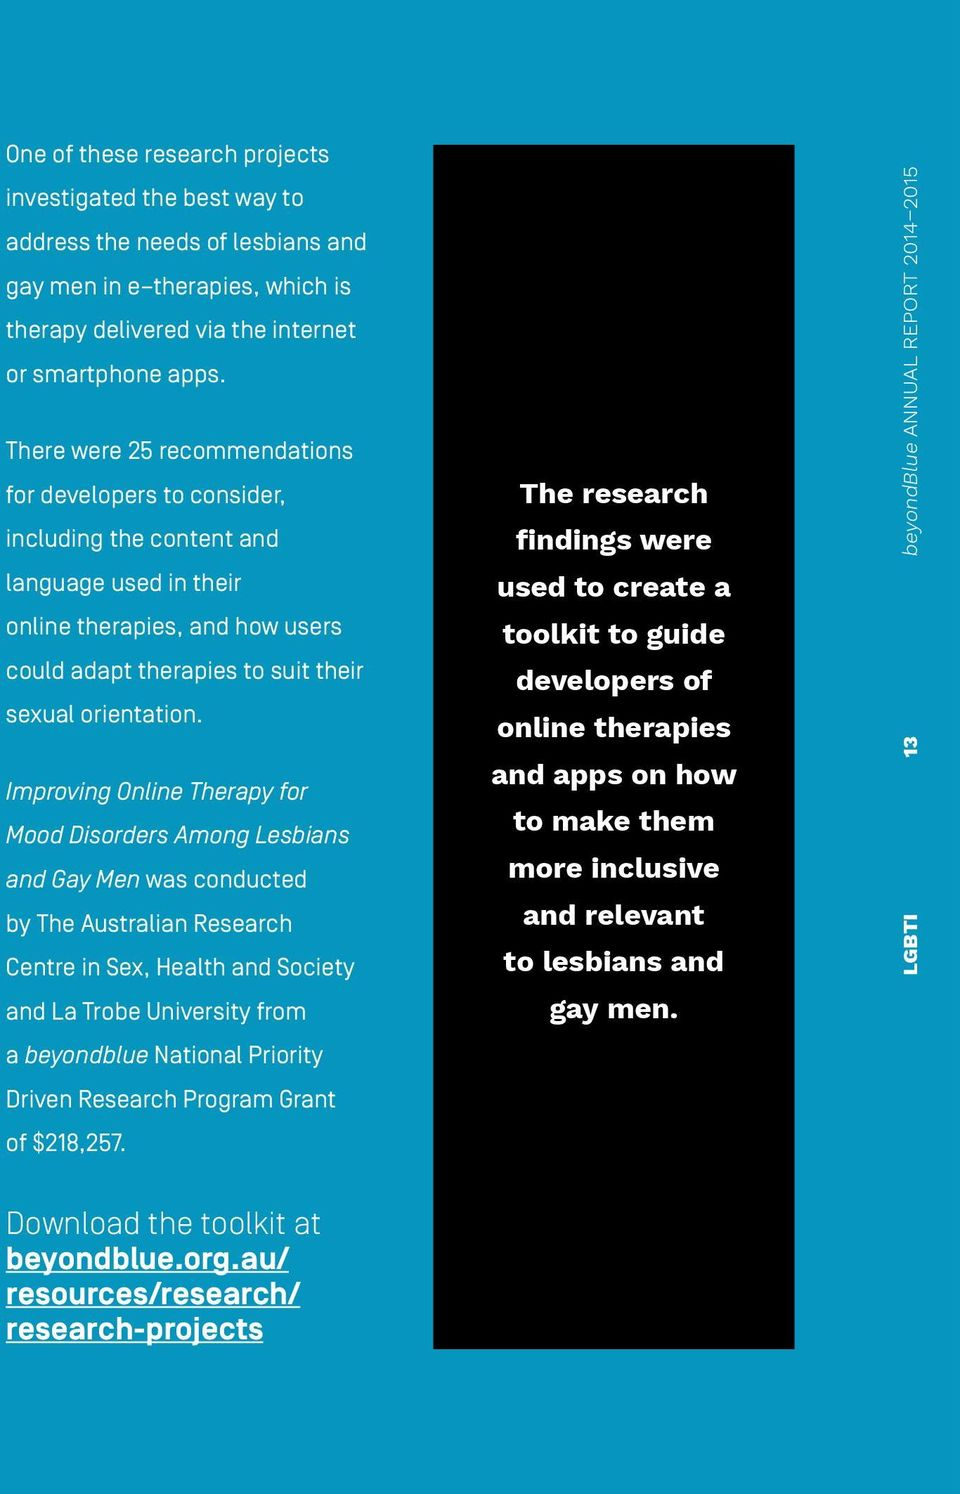 Improving Online Therapy for Mood Disorders Among Lesbians and Gay Men was conducted by The Australian Research Centre in Sex, Health and Society and La Trobe University from a beyondblue National